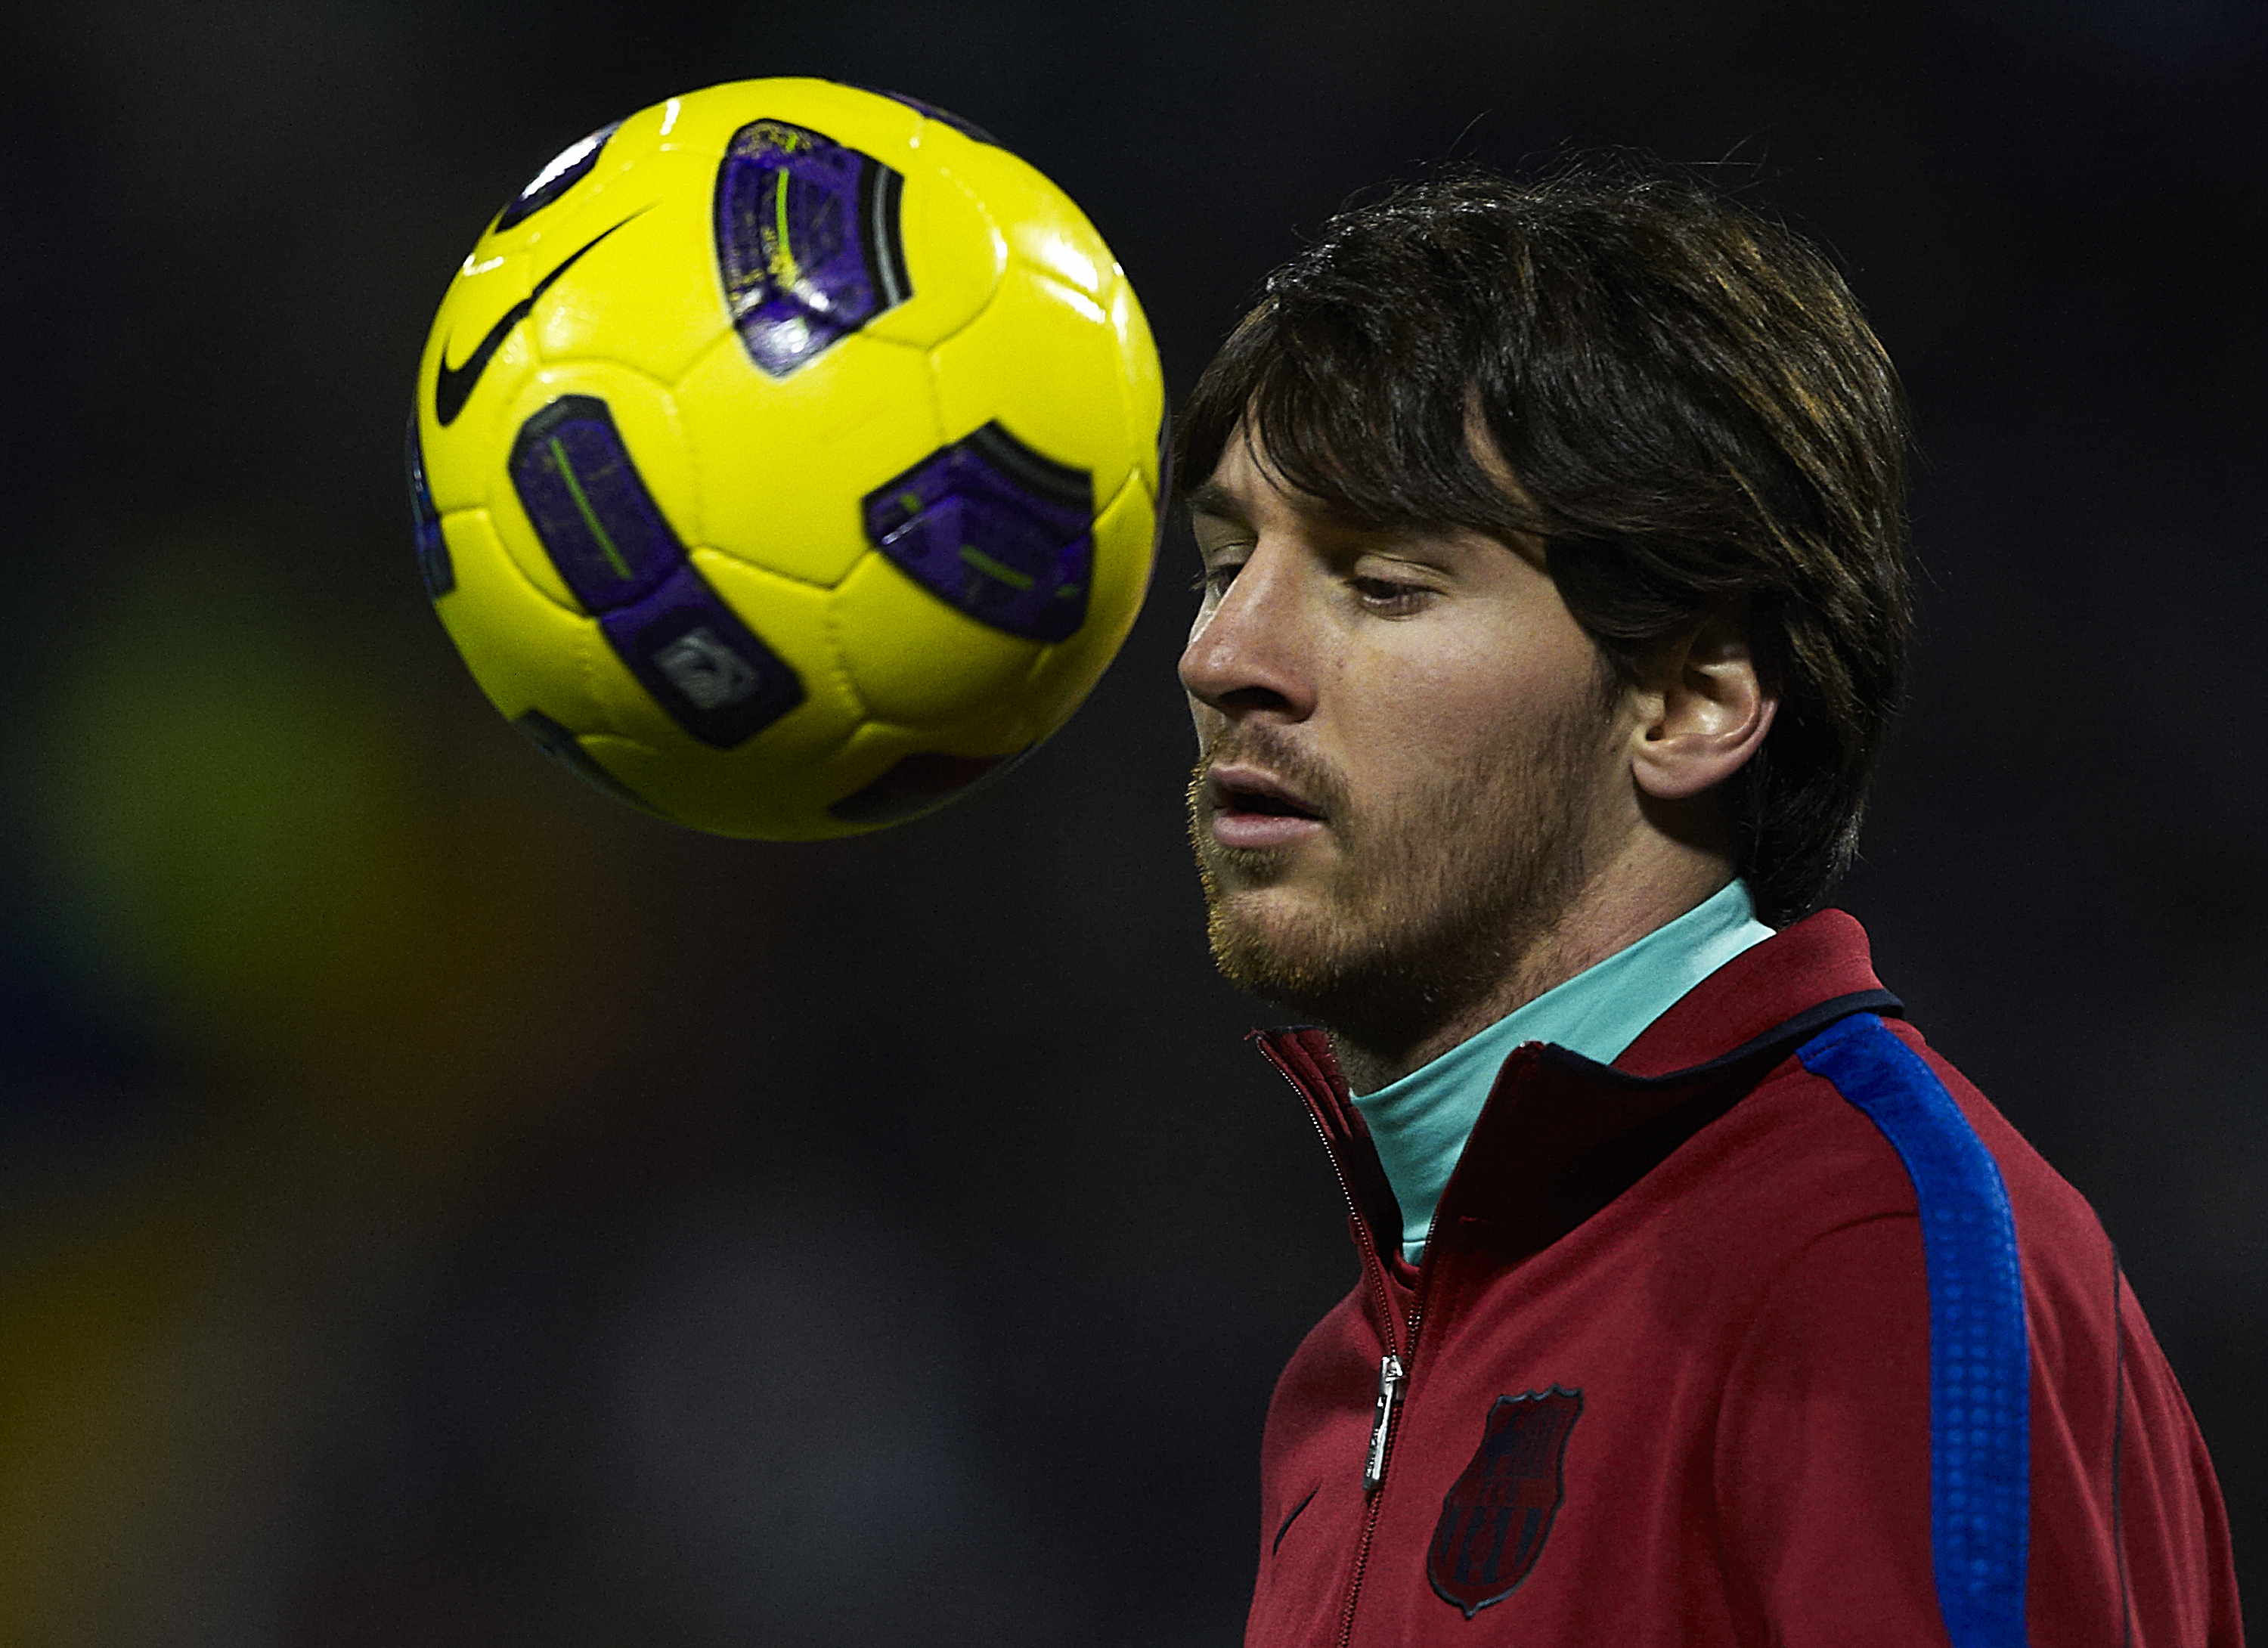 ALICANTE, SPAIN - JANUARY 29:  Lionel Messi of Barcelona controls the ball before the la Liga match between Hercules and Barcelona at Estadio Jose Rico Perez on January 29, 2011 in Alicante, Spain. Barcelona won 0-3. (Photo by Manuel Queimadelos Alonso/Ge